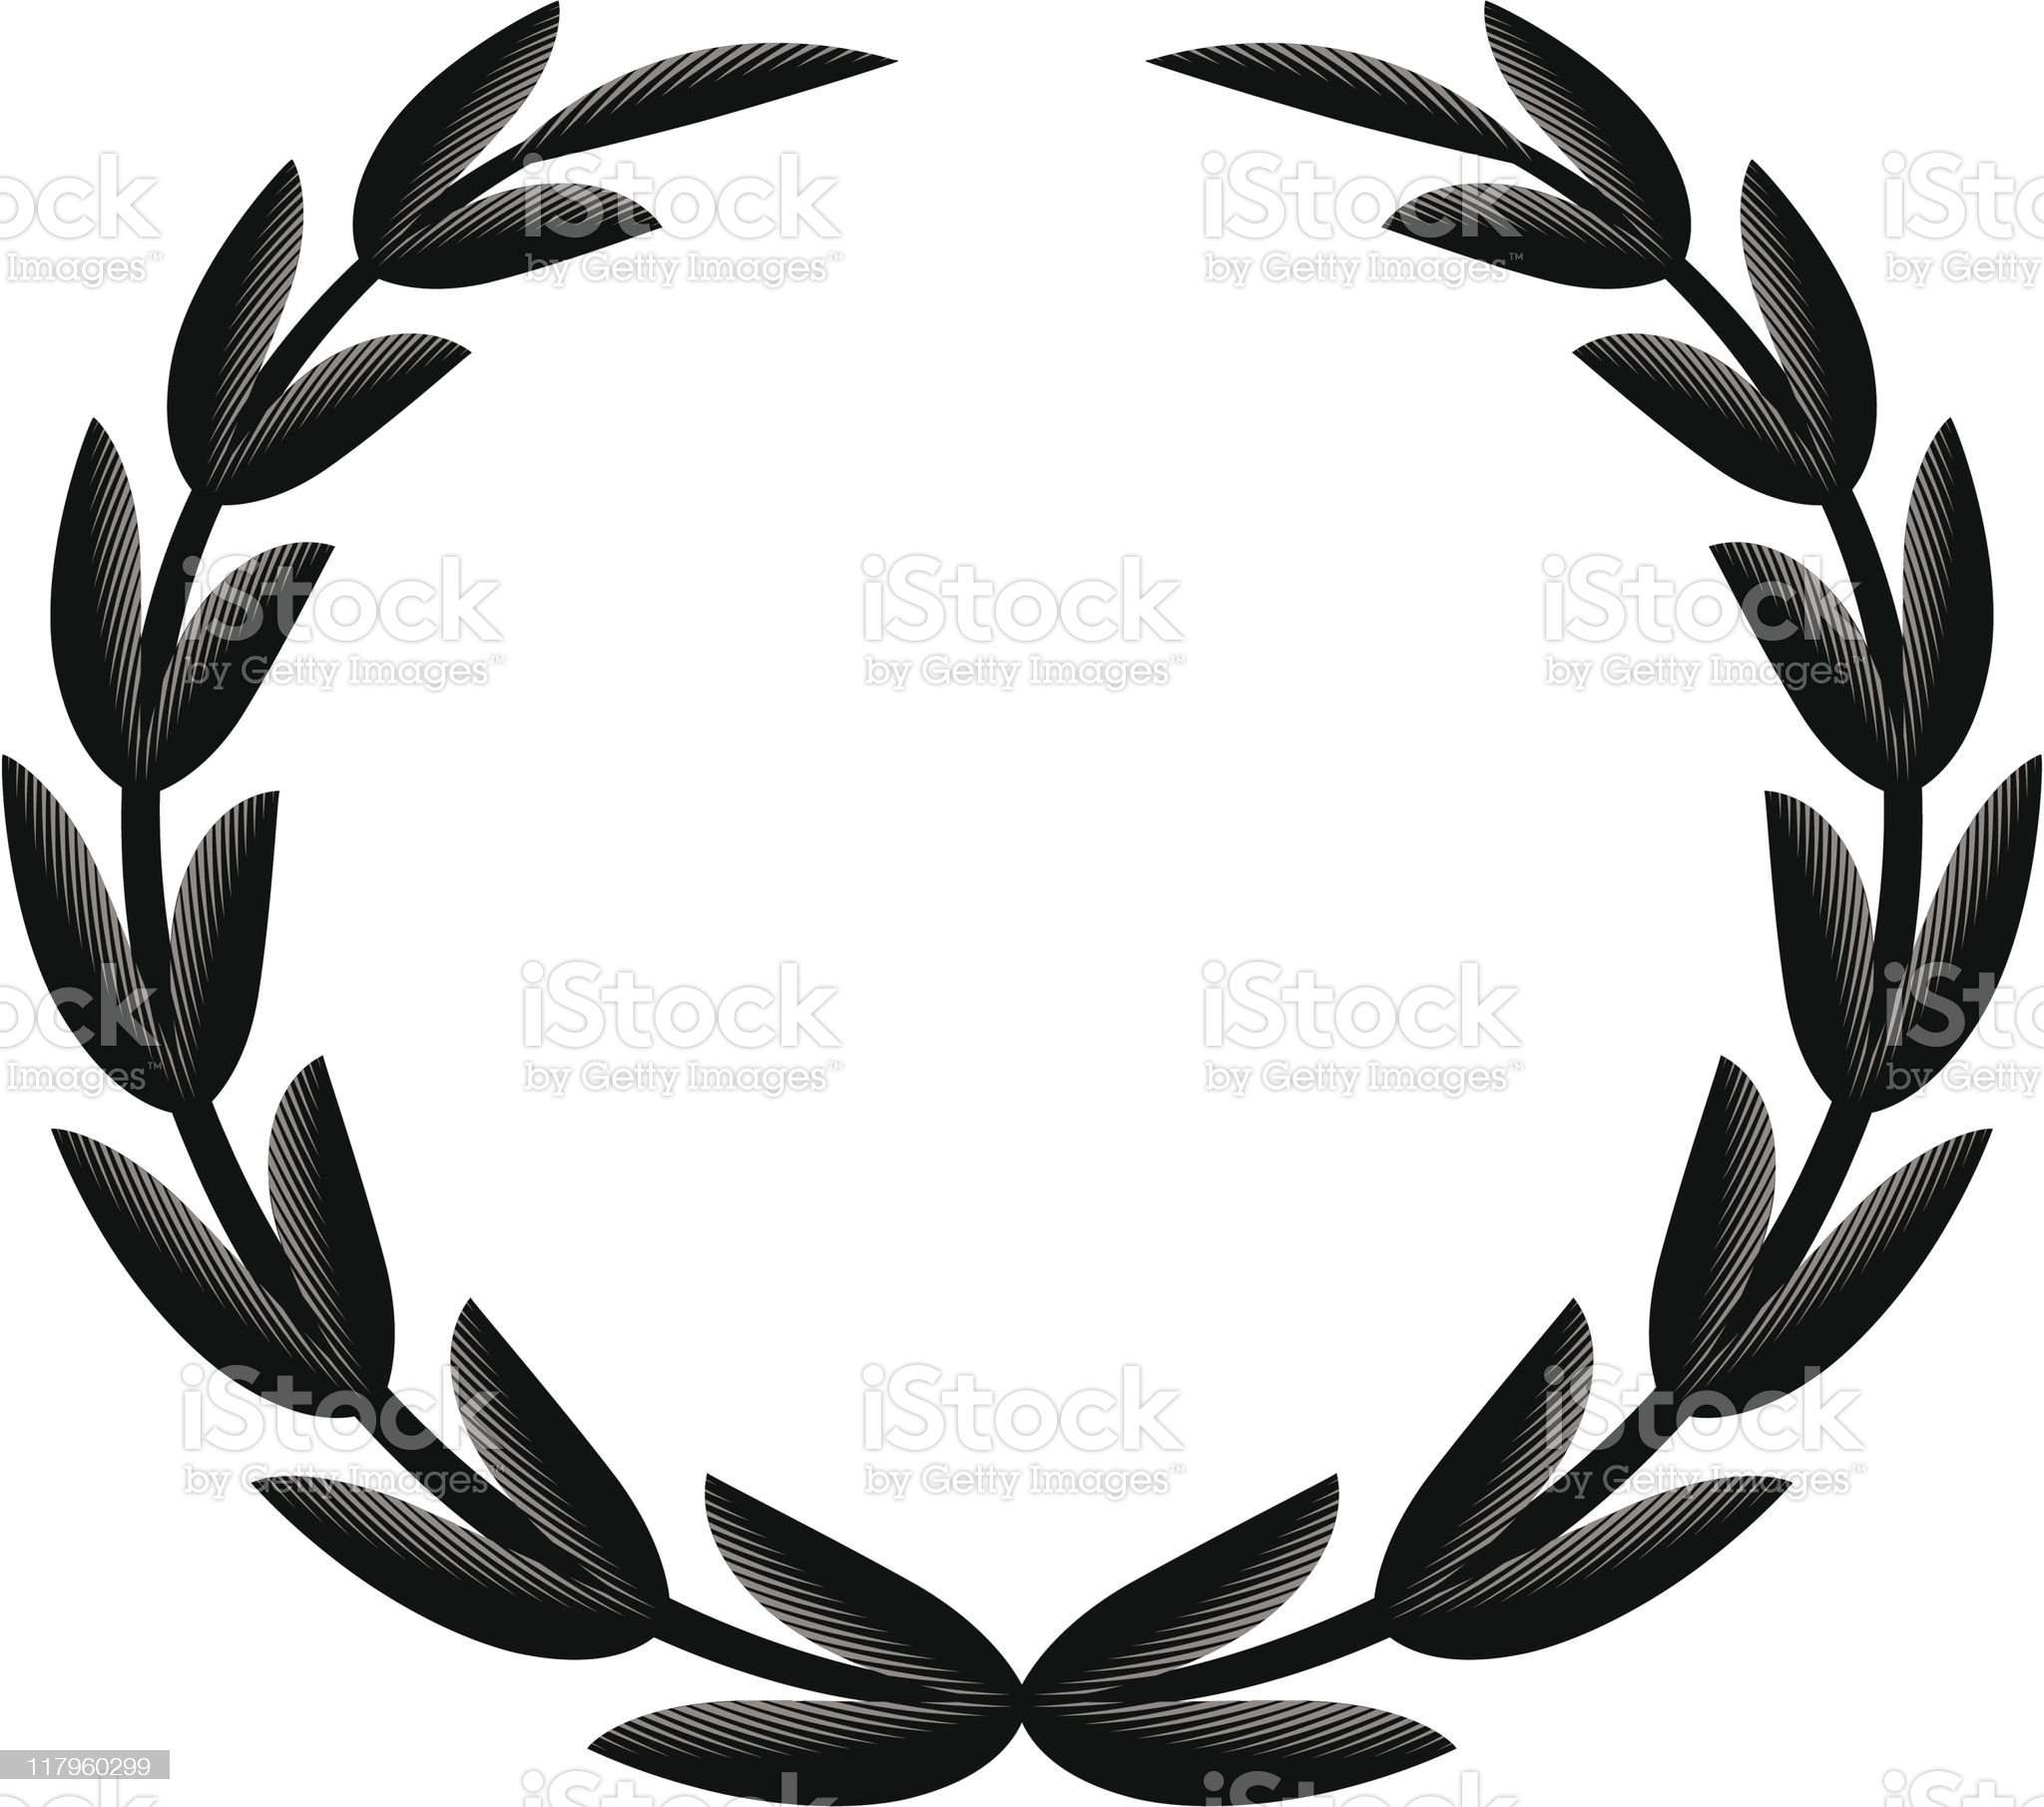 1-Credit Etched Wreath royalty-free stock vector art